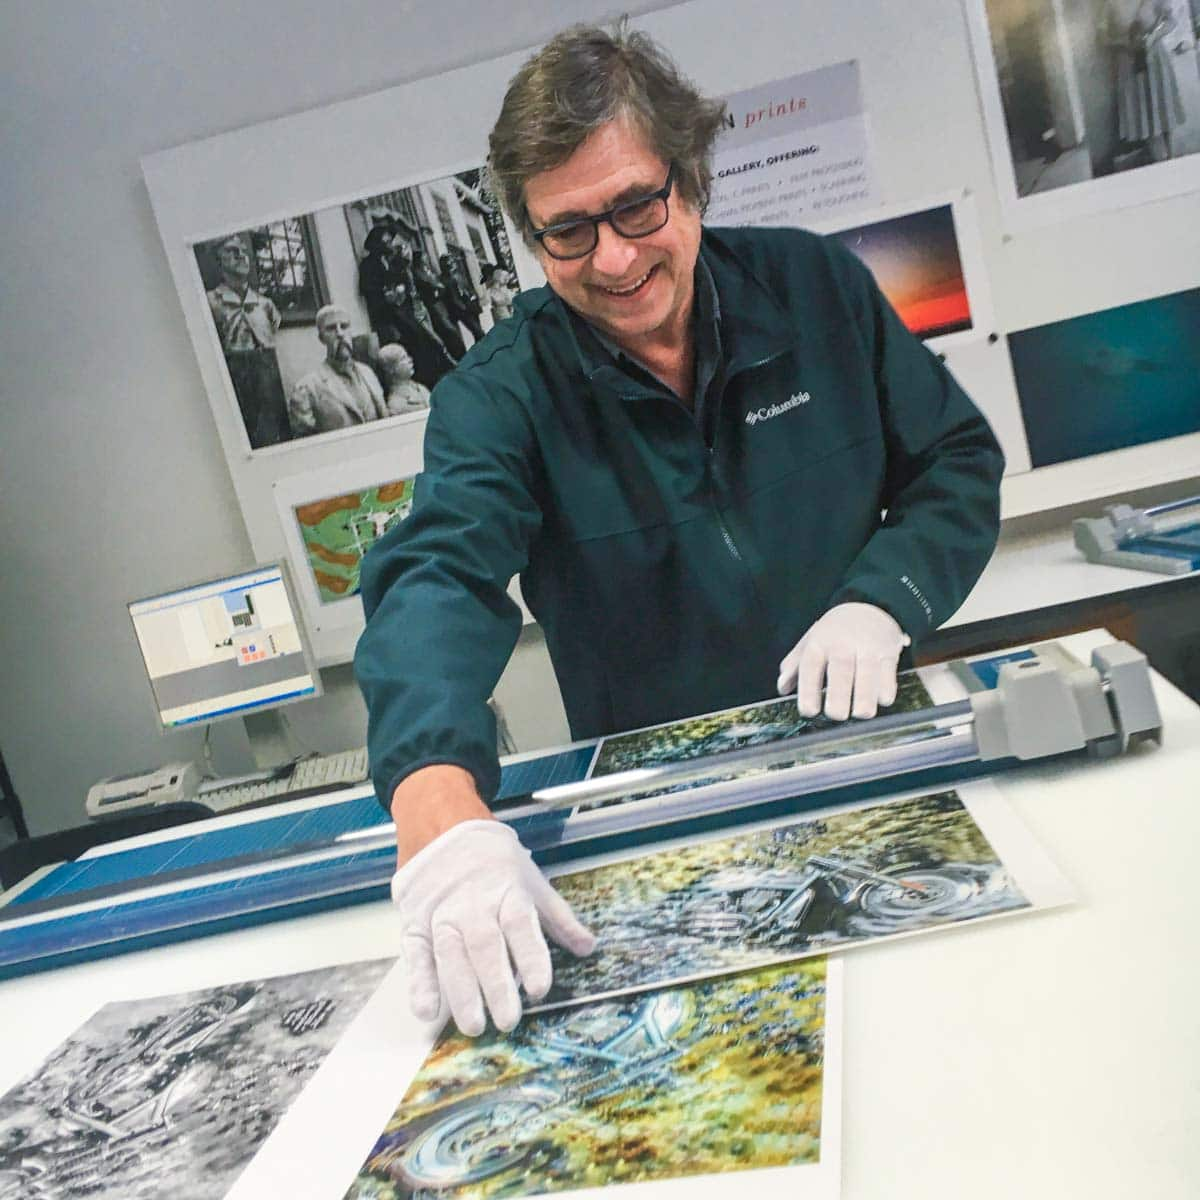 Dickerman Prints have printers that use the AdobeRGB 1998 colorspace.